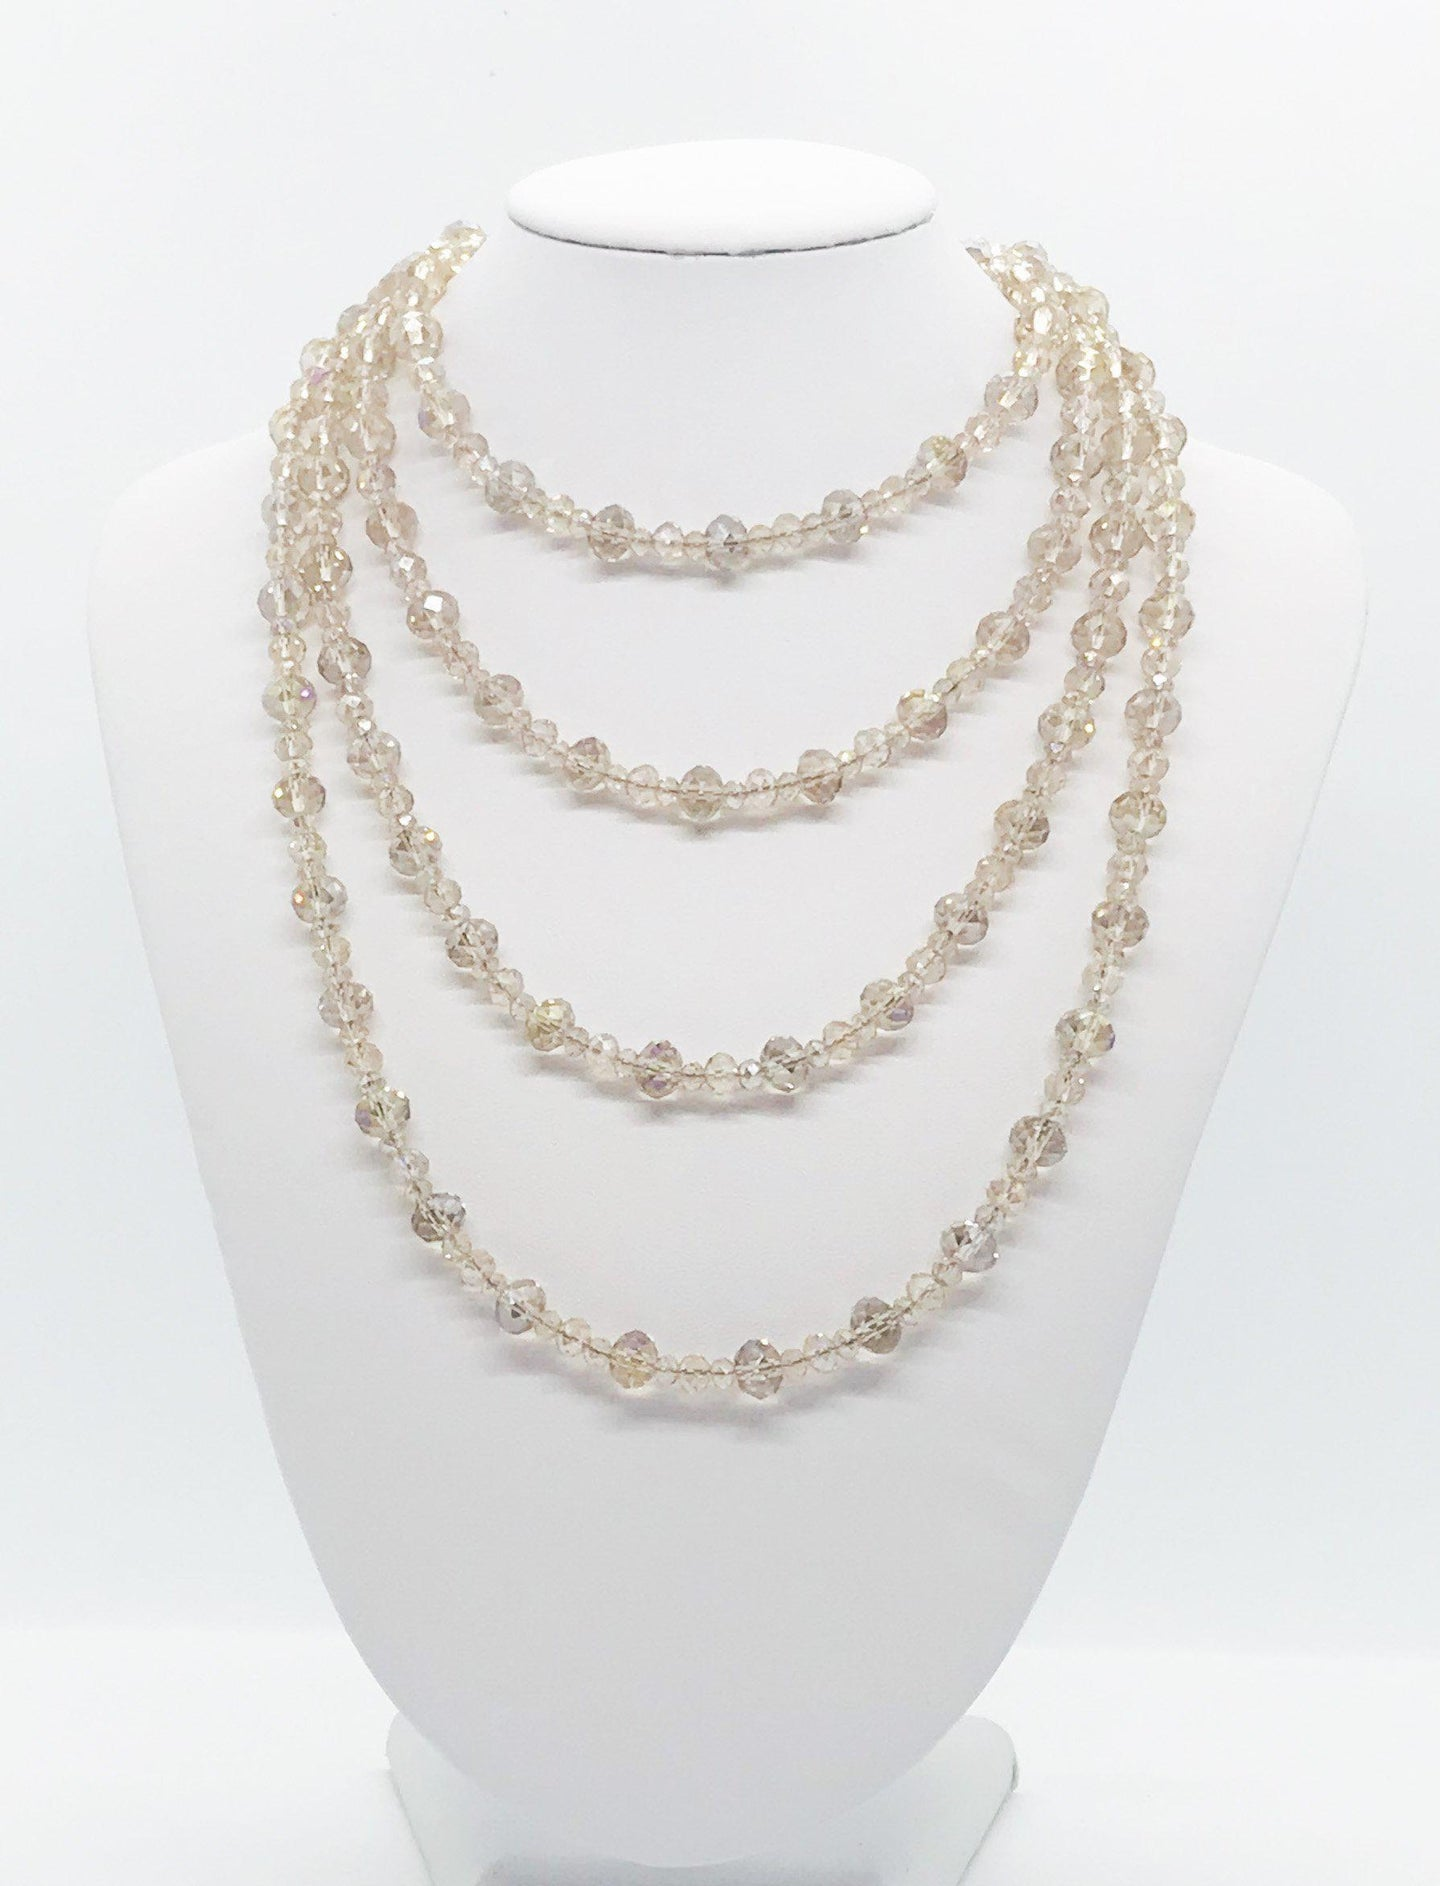 Champagne Color Glass Bead Necklace - N194